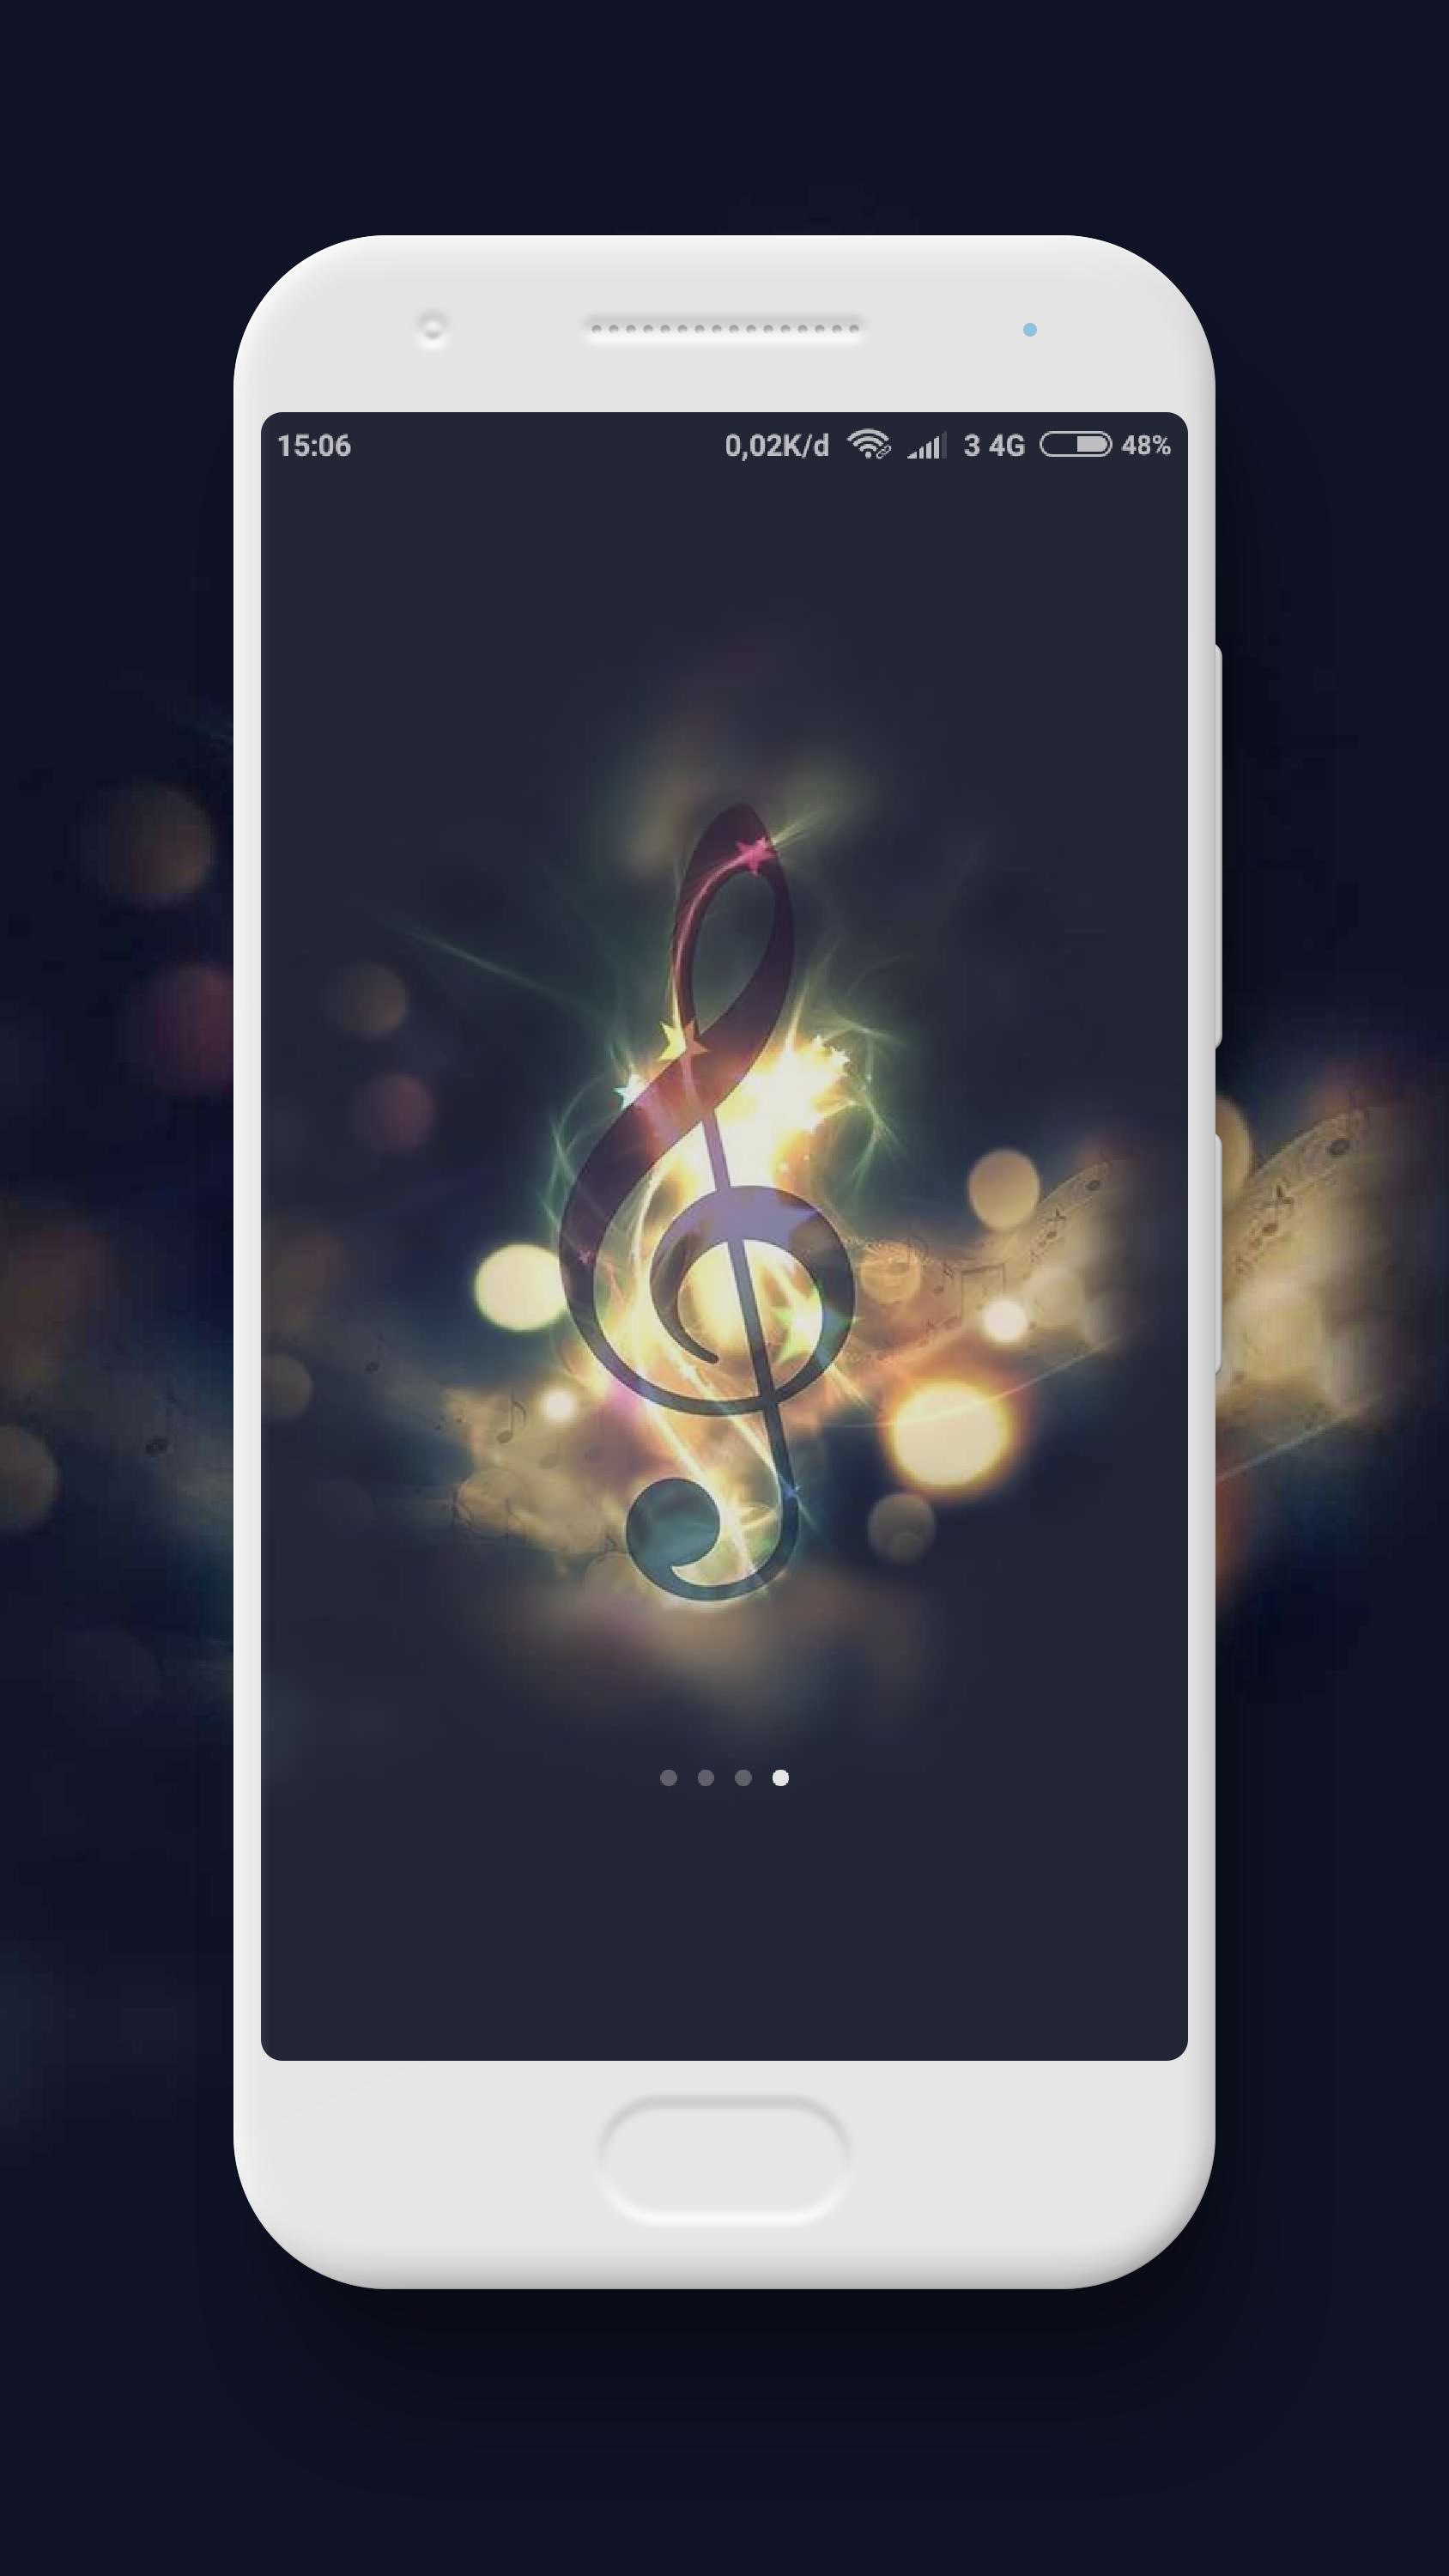 Music Wallpaper For Android Apk Download